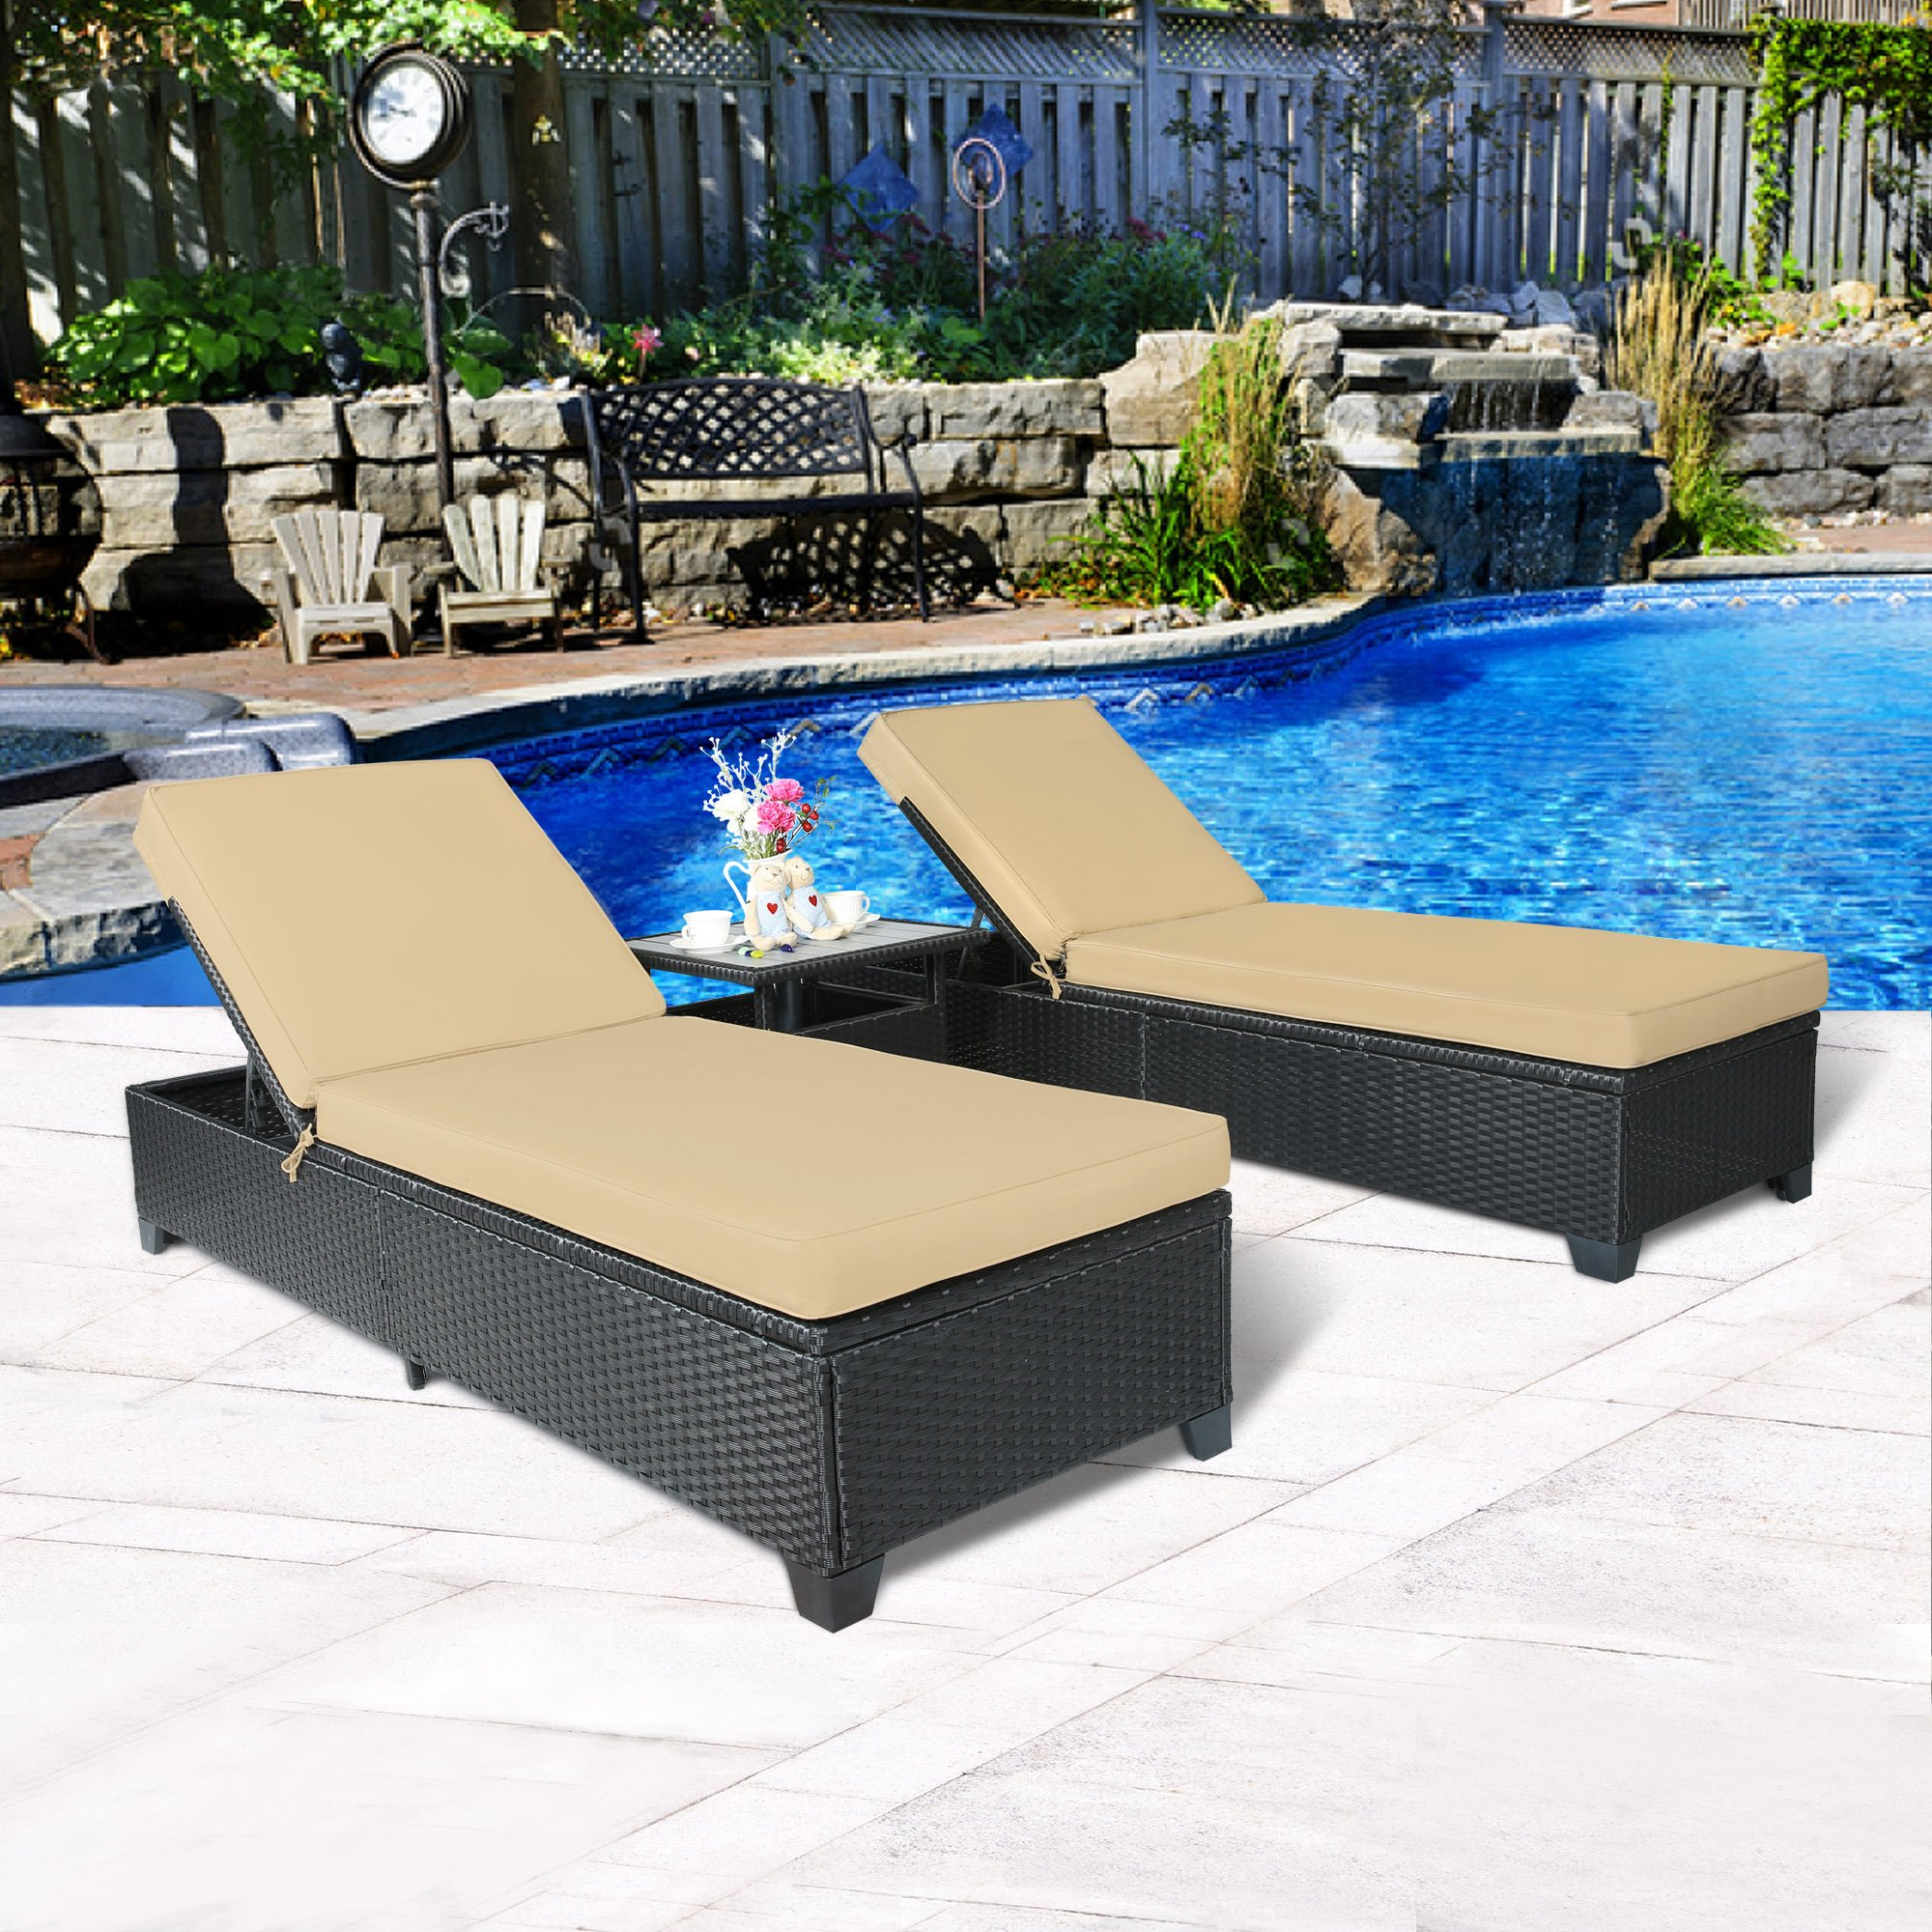 Buy Cloud Mountain 3pc Outdoor Rattan Chaise Lounge Chair Inside Most Popular Outdoor Adjustable Rattan Wicker Chaise Pool Chairs With Cushions (View 11 of 25)